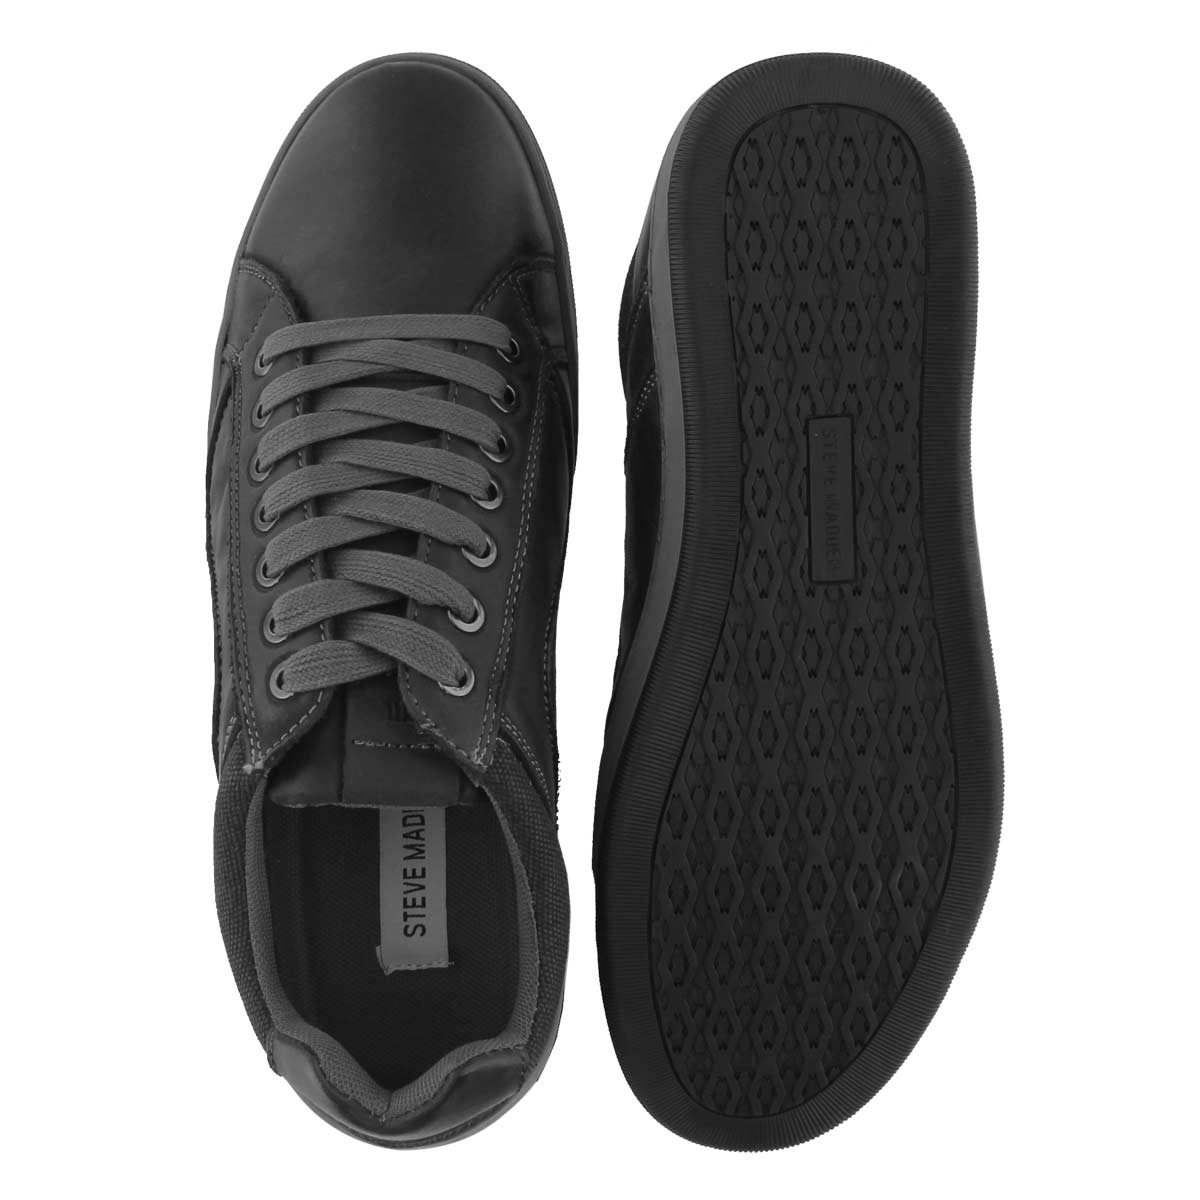 Mns Chandler dk gry laceup casual sneakr